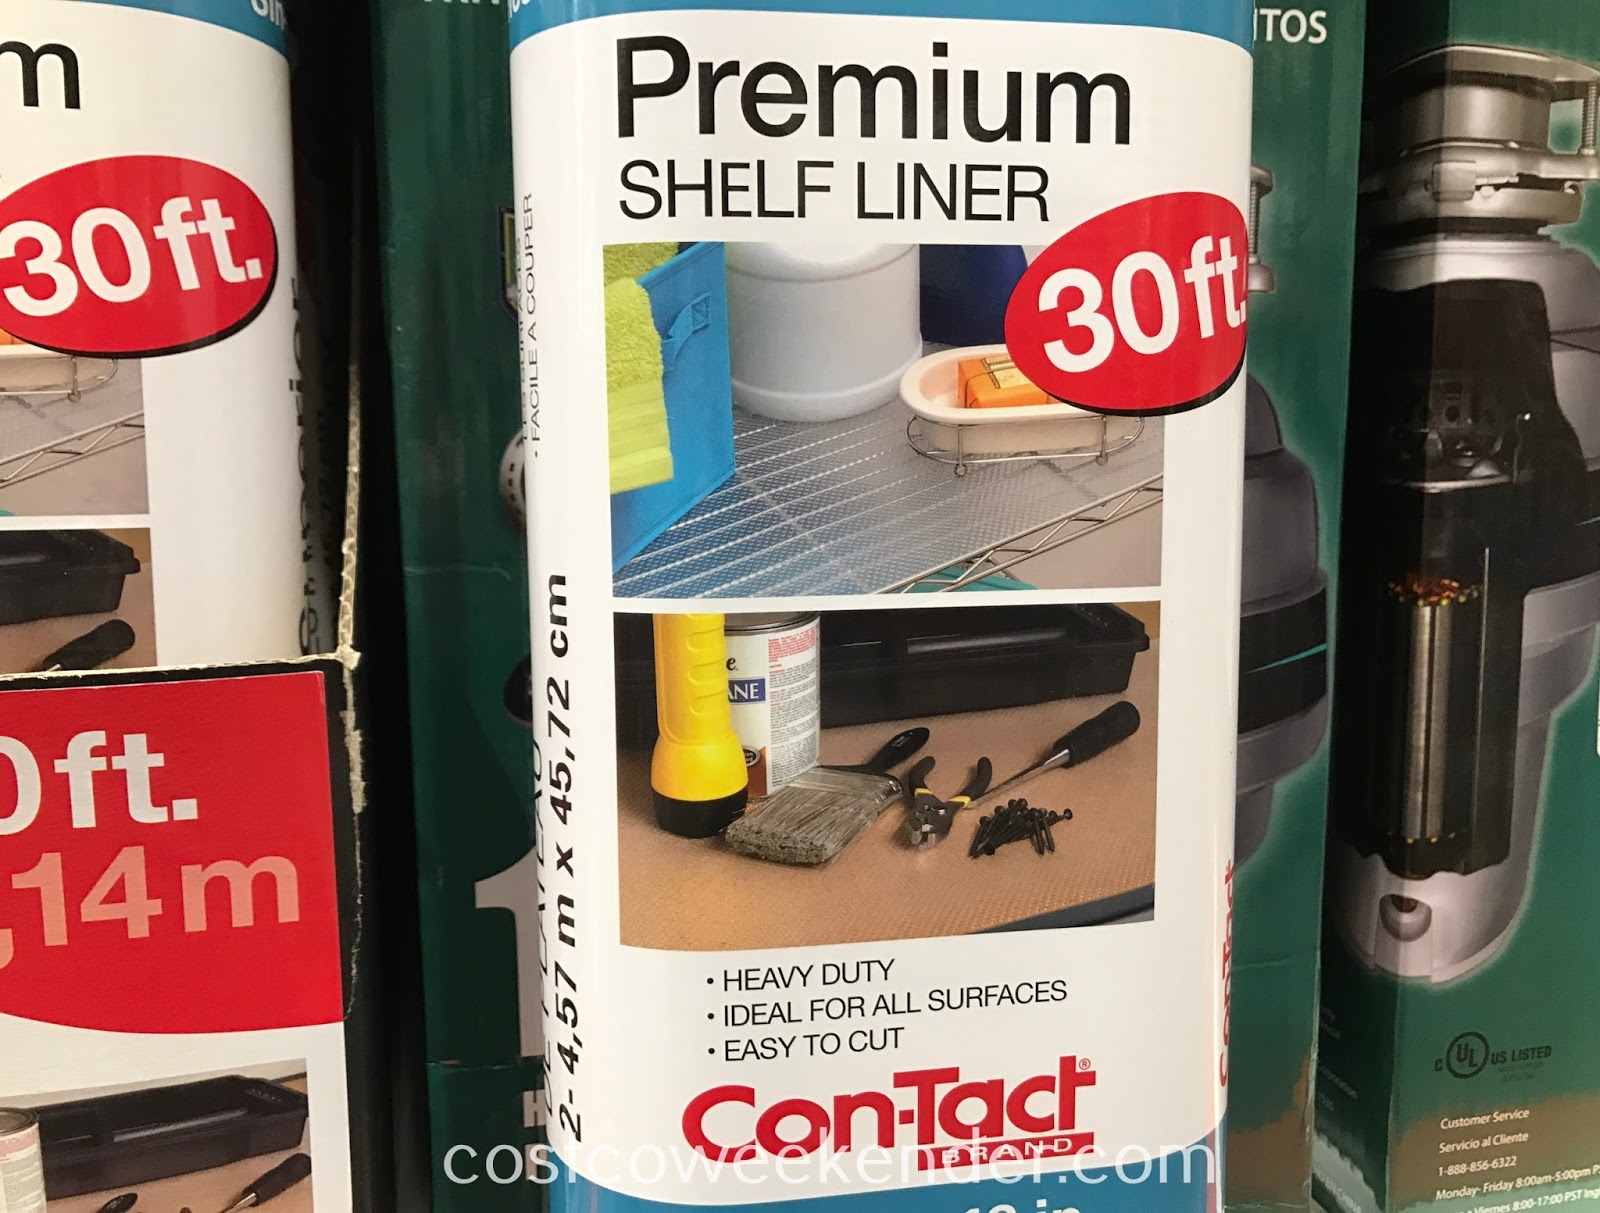 Costco 1171570 - Con-Tact Premium Shelf Liner: practical for any home